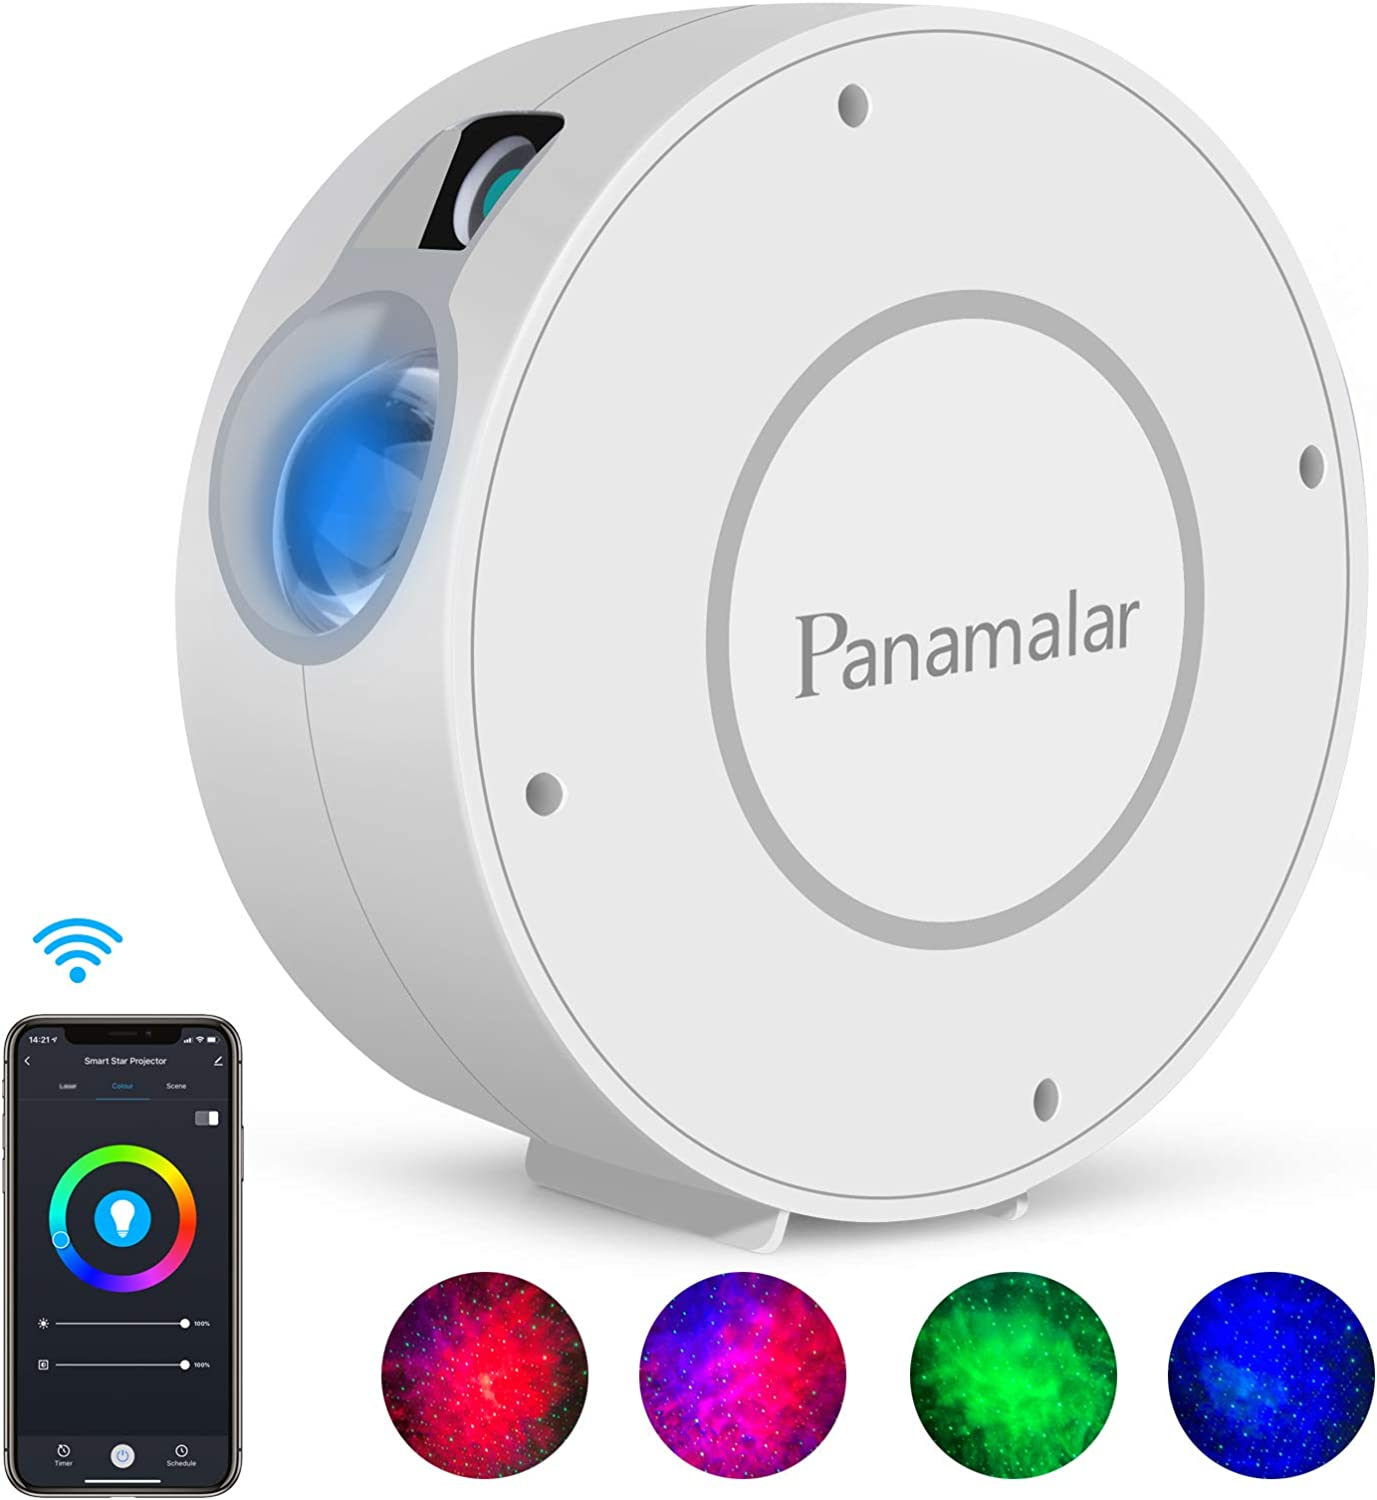 Panamalar Smart Star Projector, WiFi Galaxy Light Projector Nebula Cloud Projector with APP Control,Timer,Alexa Google Home Voice Control, Starry Sky Projector Night Light for Bedroom Kids Party Gift